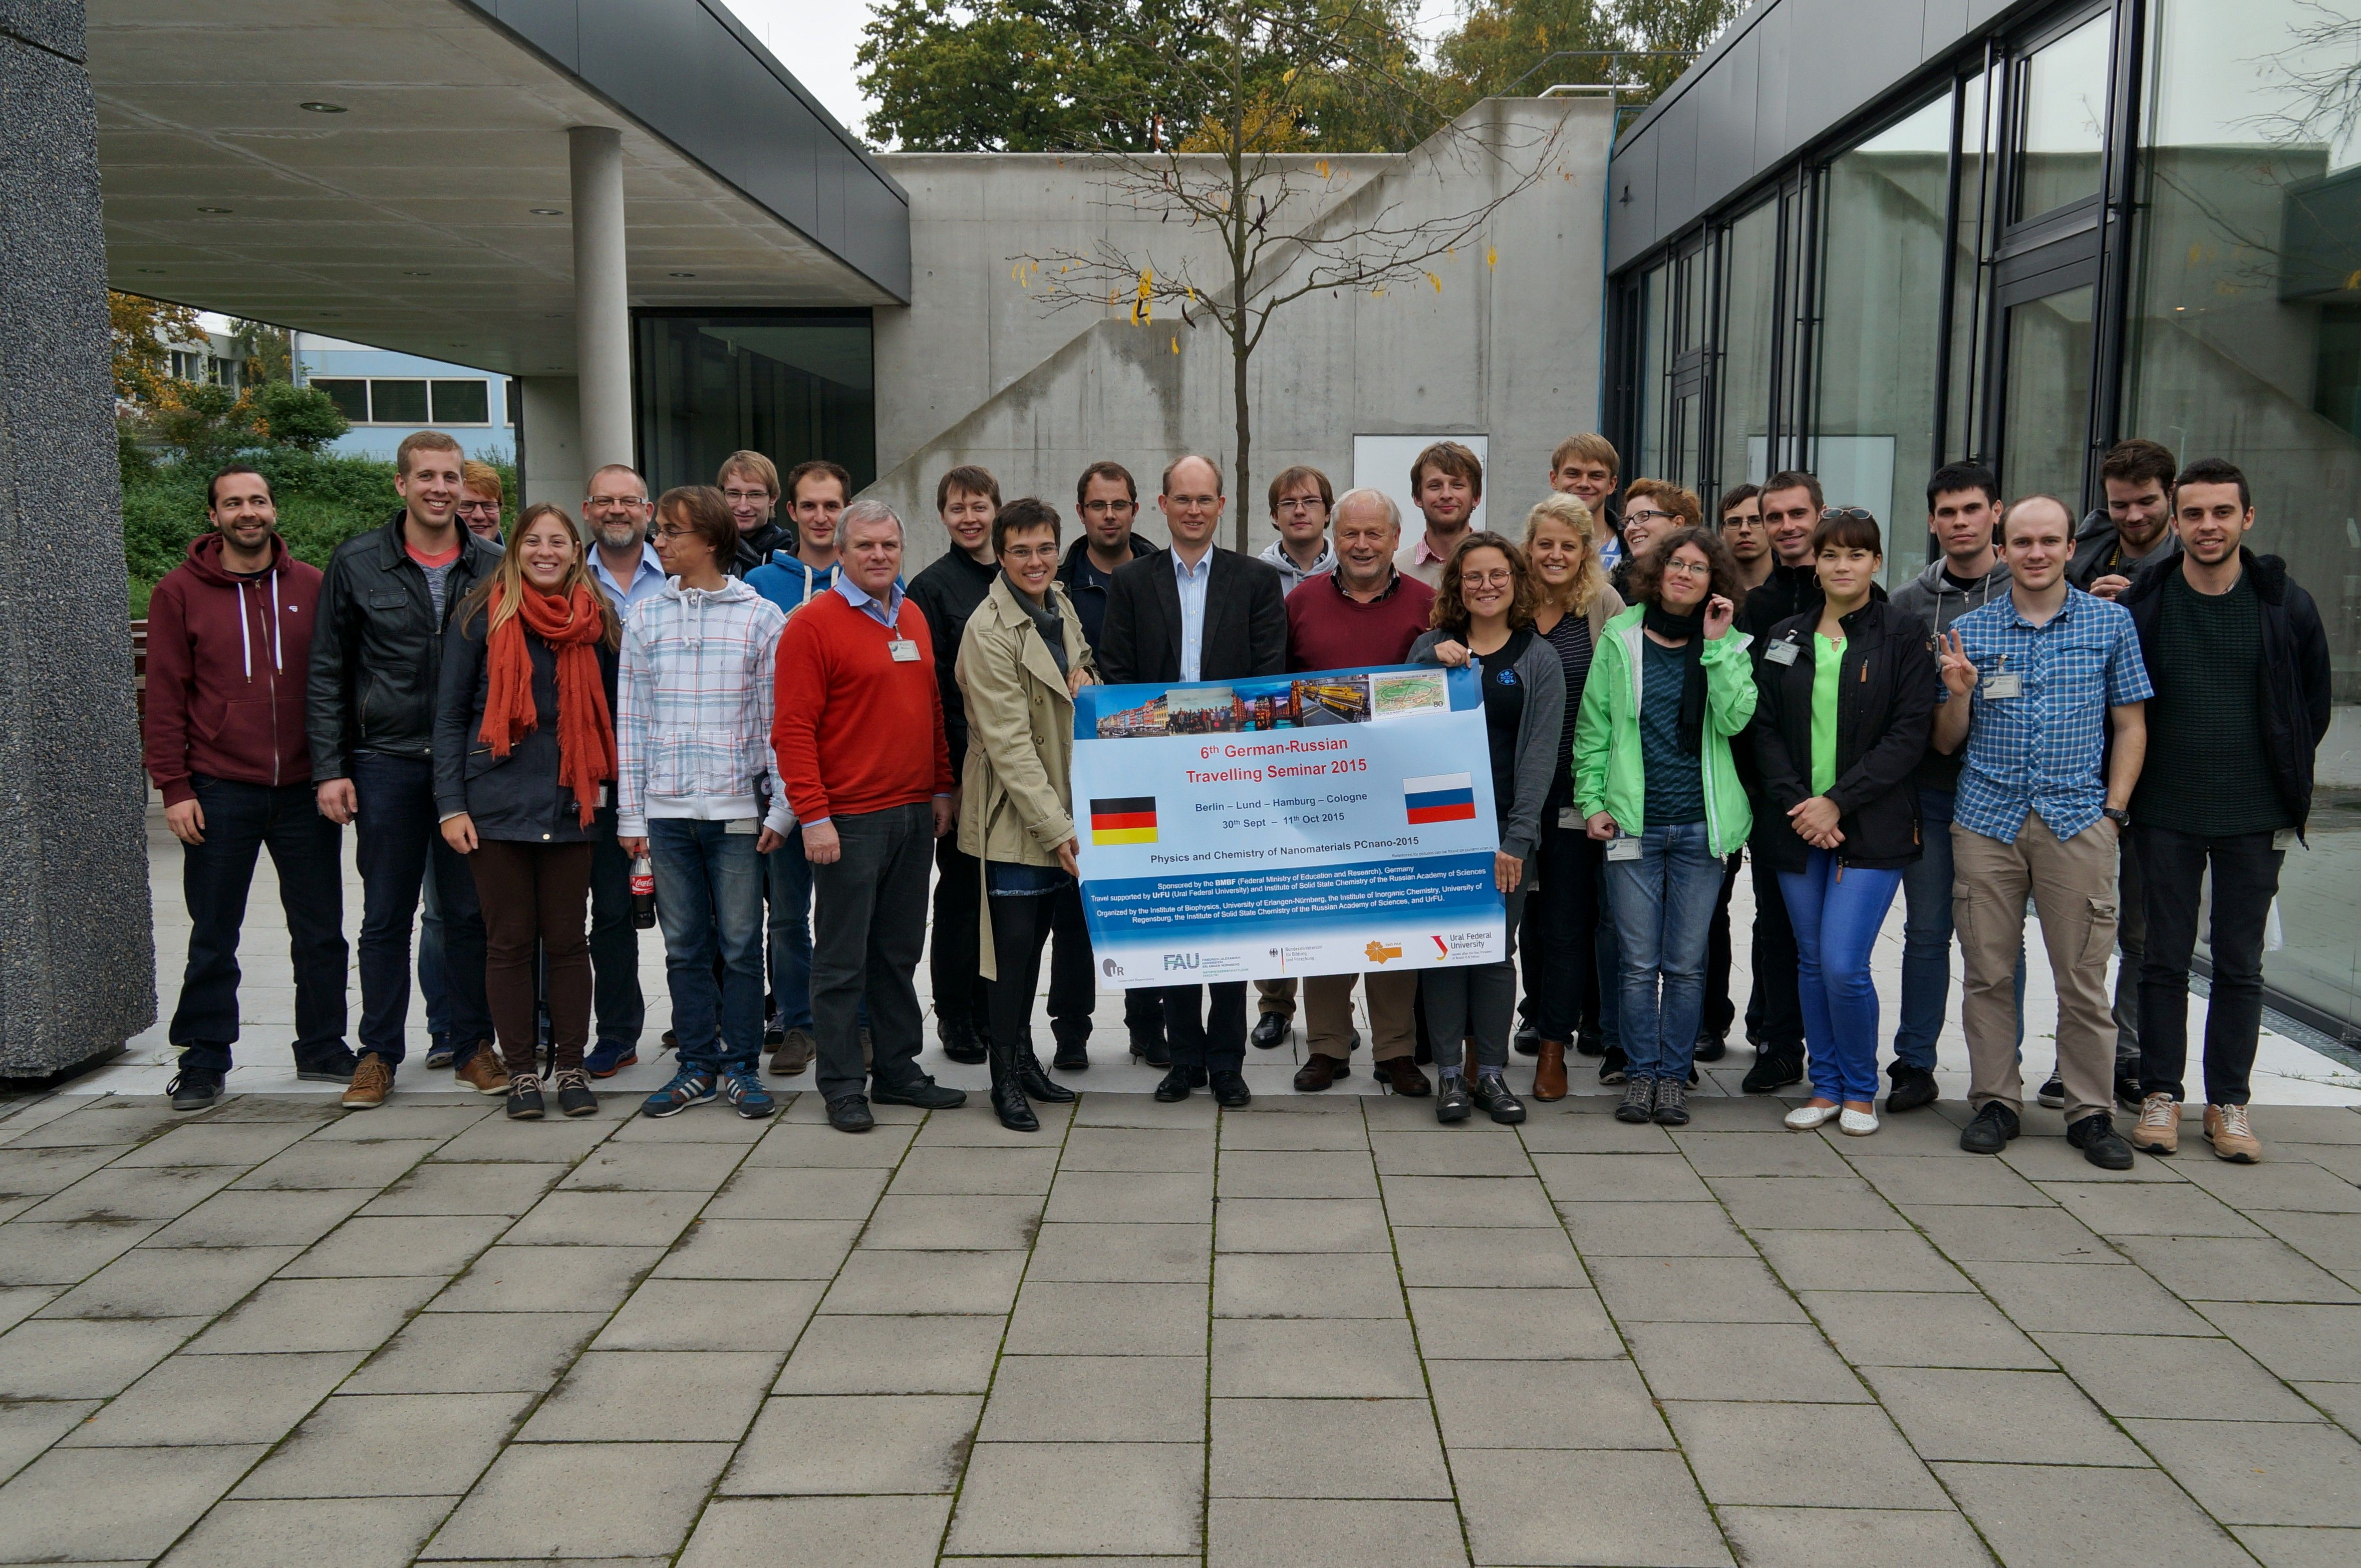 Participants of the 6th German-Russian Travelling Seminars together with the organizer of the Russian Academy of Sciences, the Universities Regensburg and Erlangen-Nürnberg as well as the Vice Director of the Institute of Materials Physics in Space.